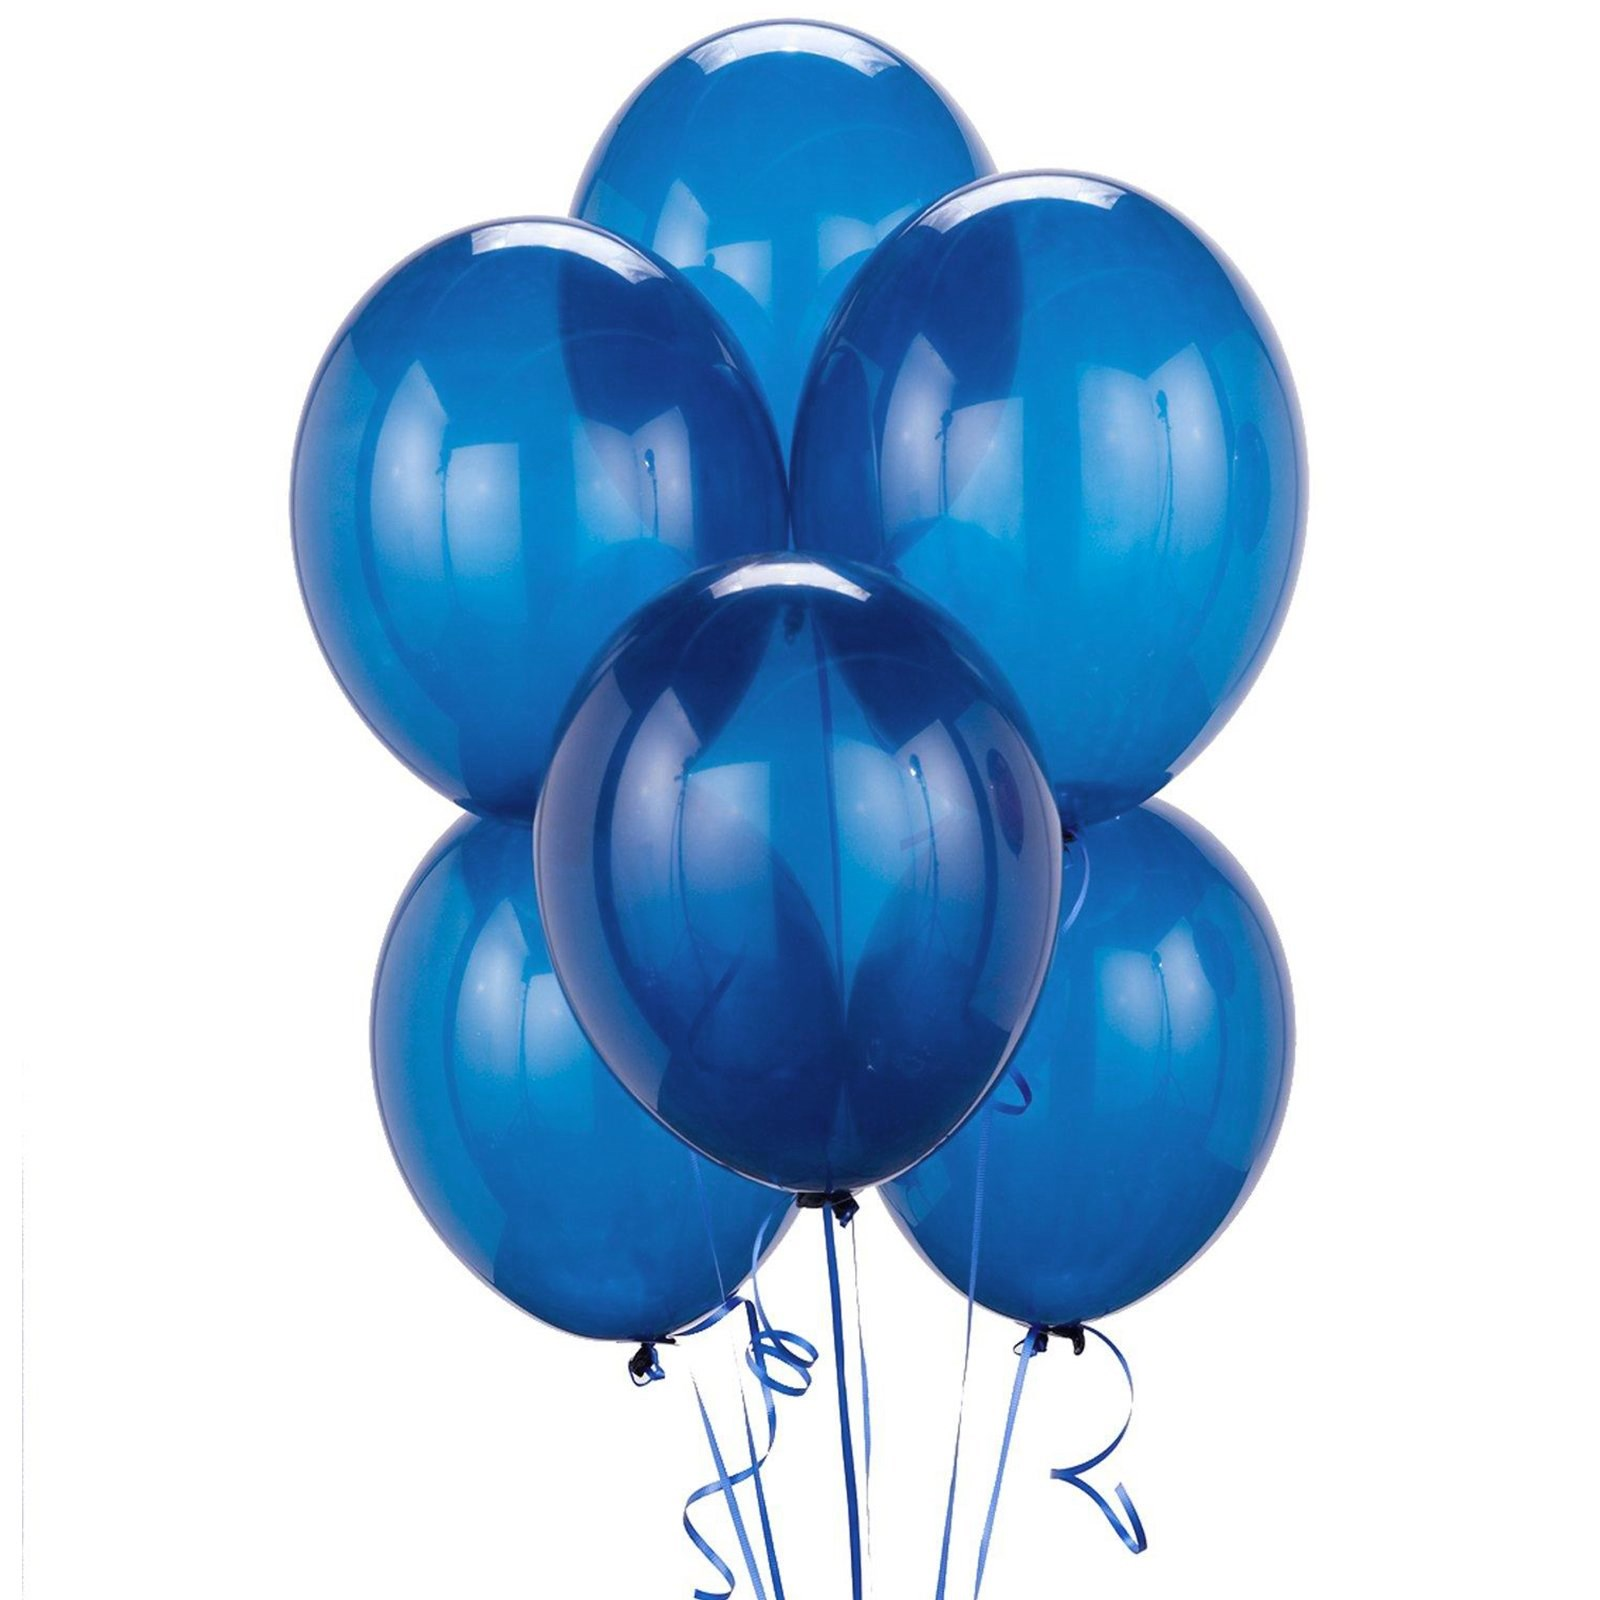 Green and blue balloons - Crystal Blue Balloons 6